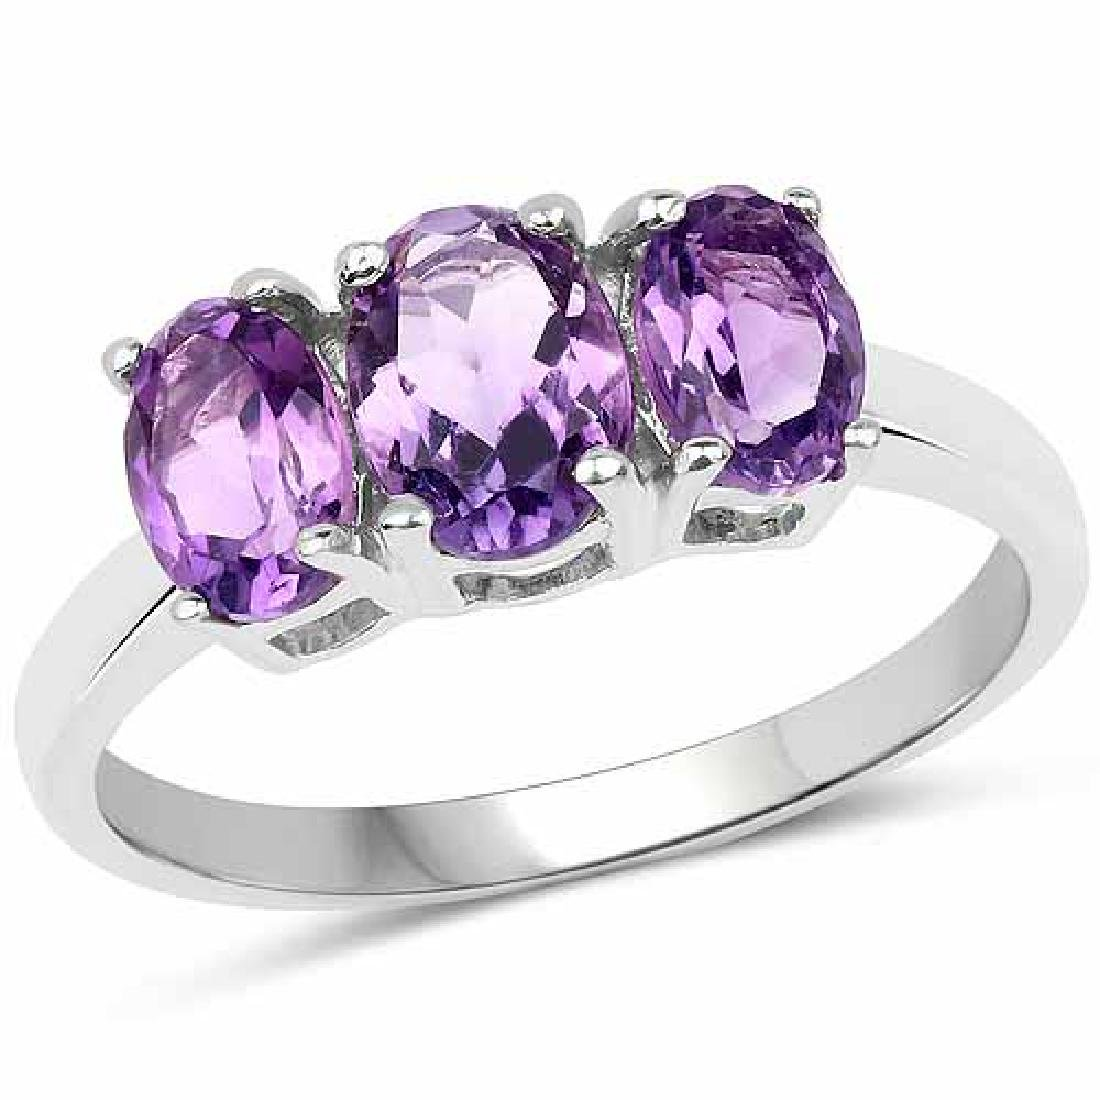 1.66 Carat Genuine Amethyst .925 Sterling Silver Ring